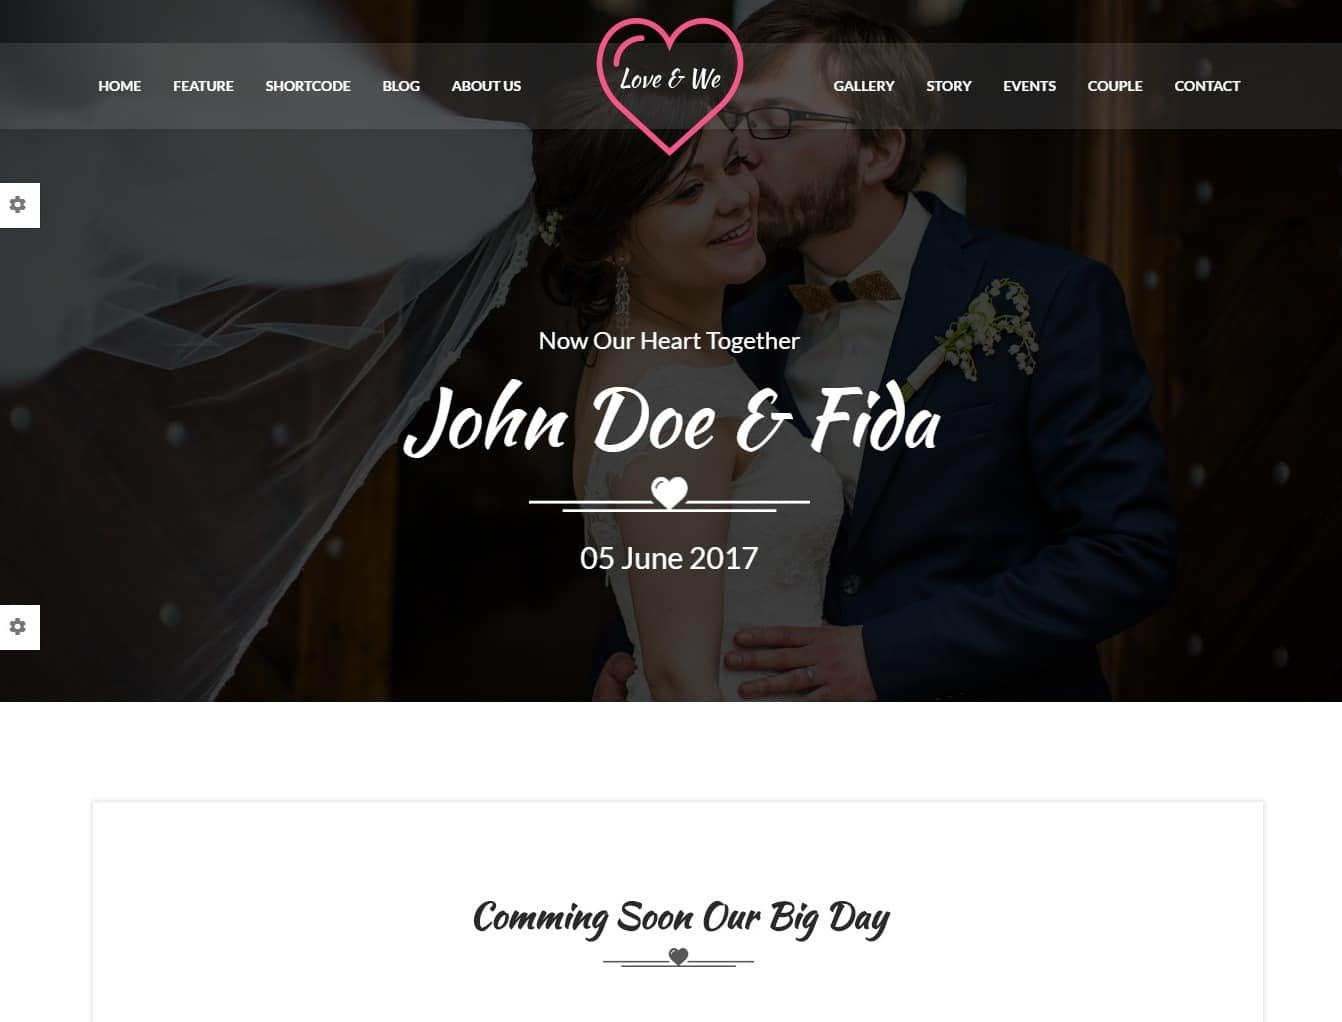 love and we wedding website template